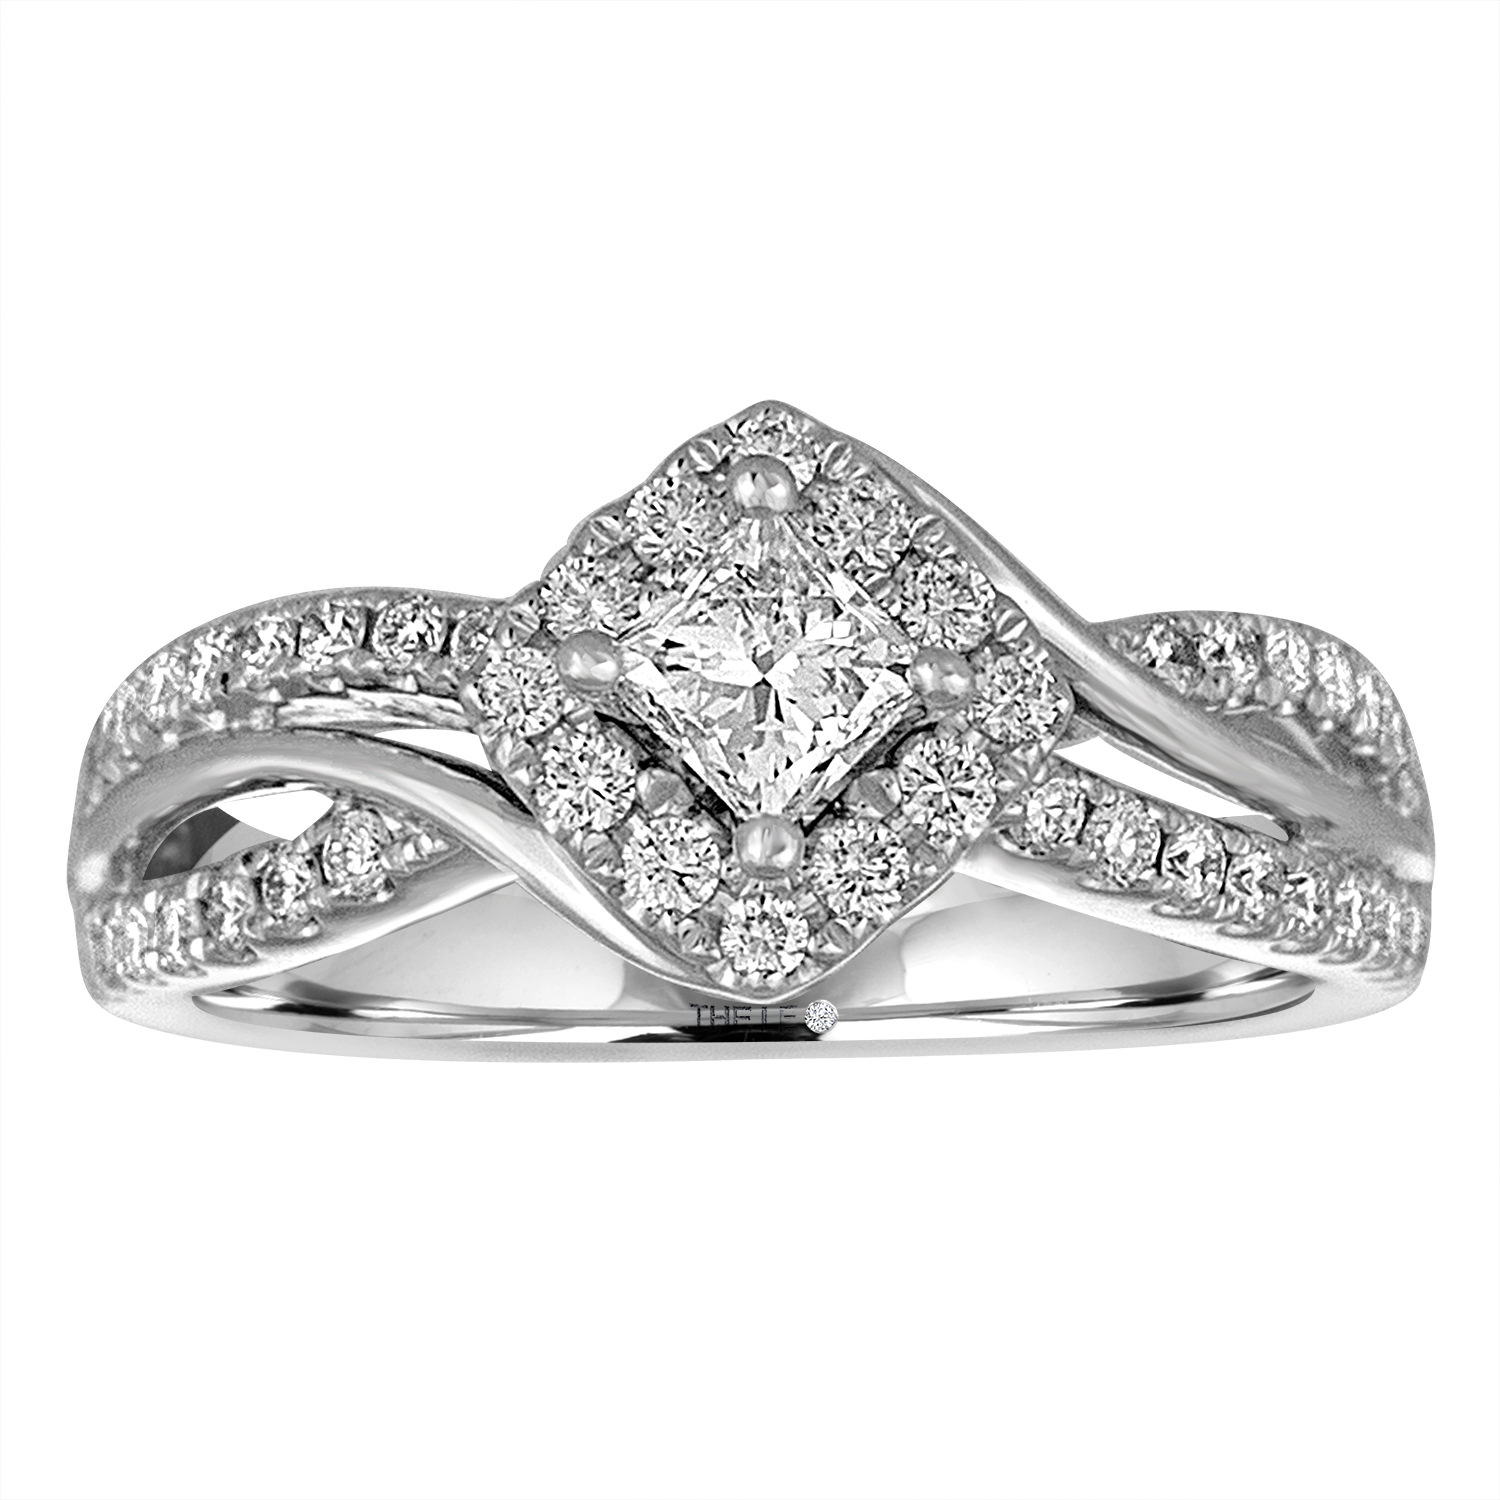 Leo Diamond Engagement Ring 3/4 ct tw Diamonds 14K White Gold